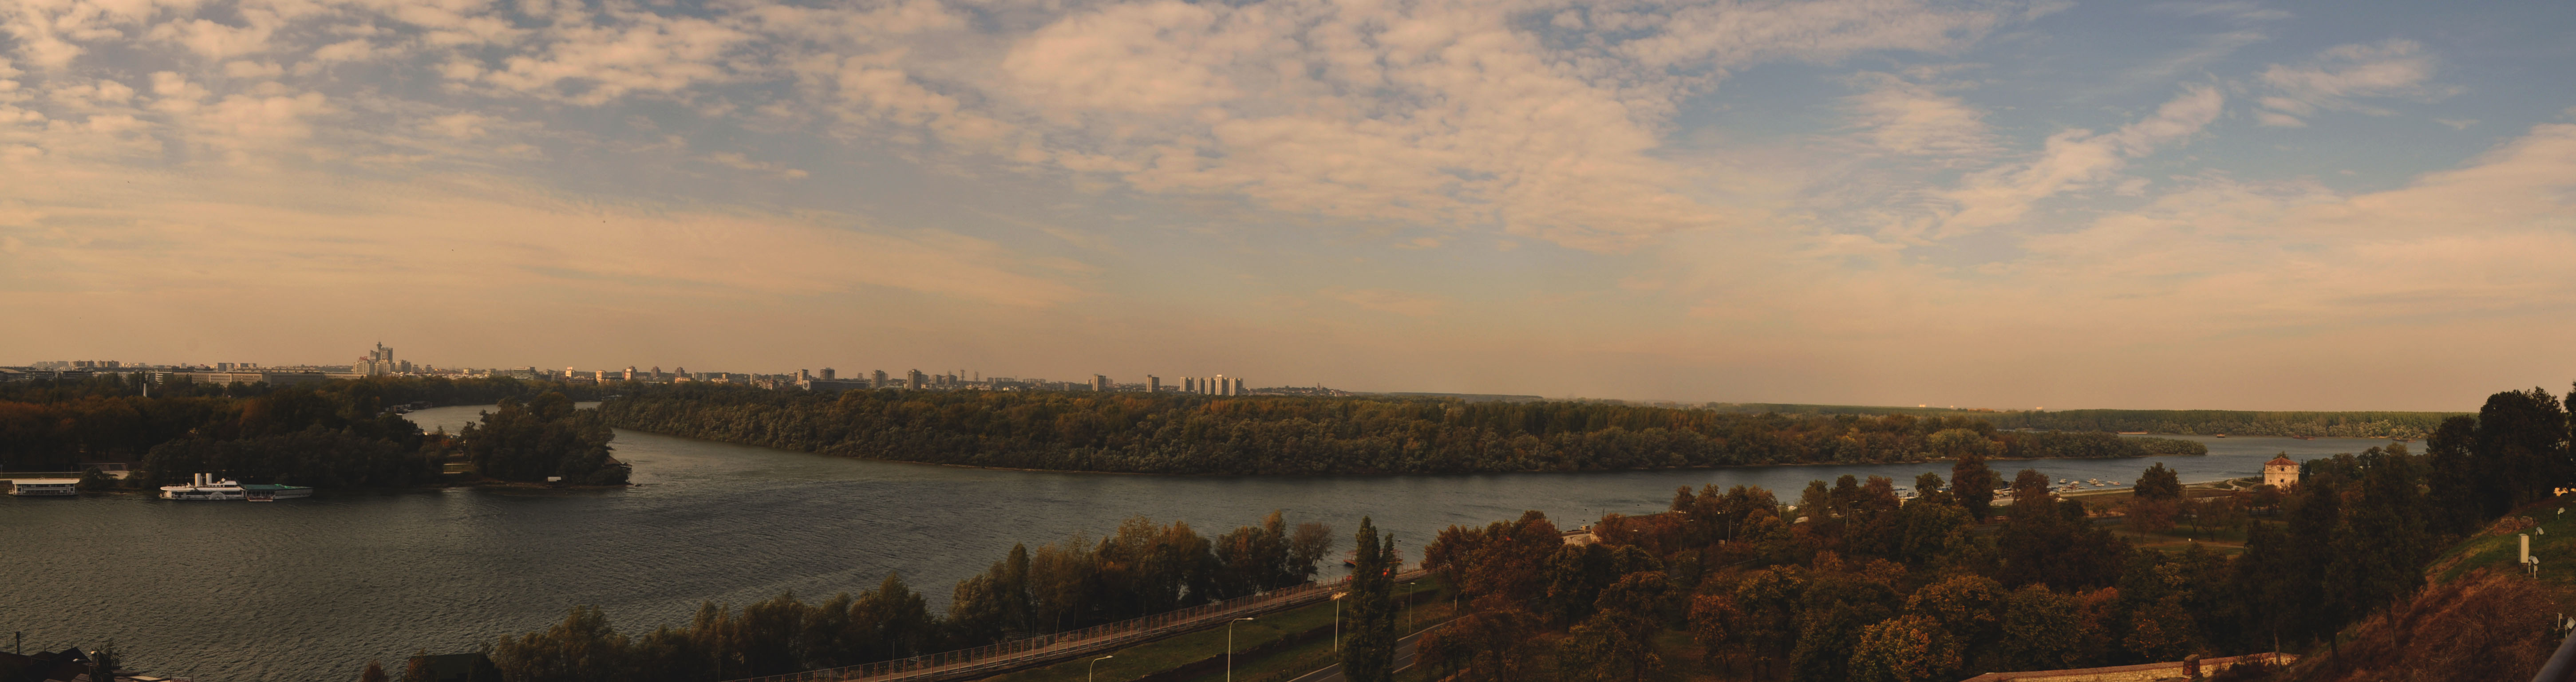 panorama-sava-danube-edit